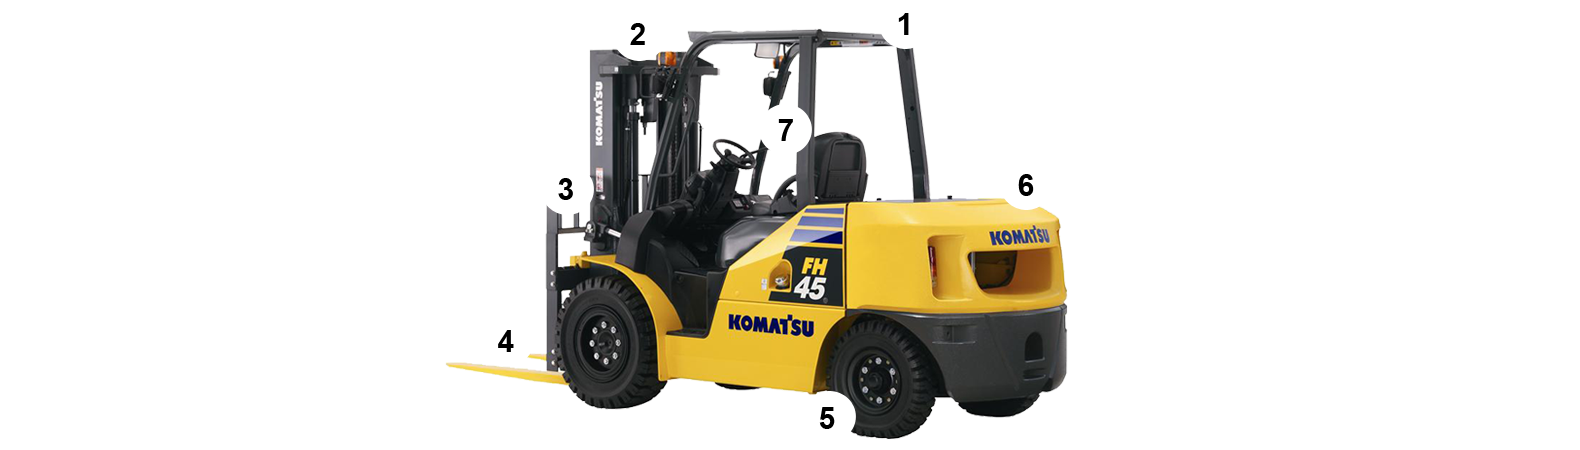 Forklift drawing perspective. News page of wayco